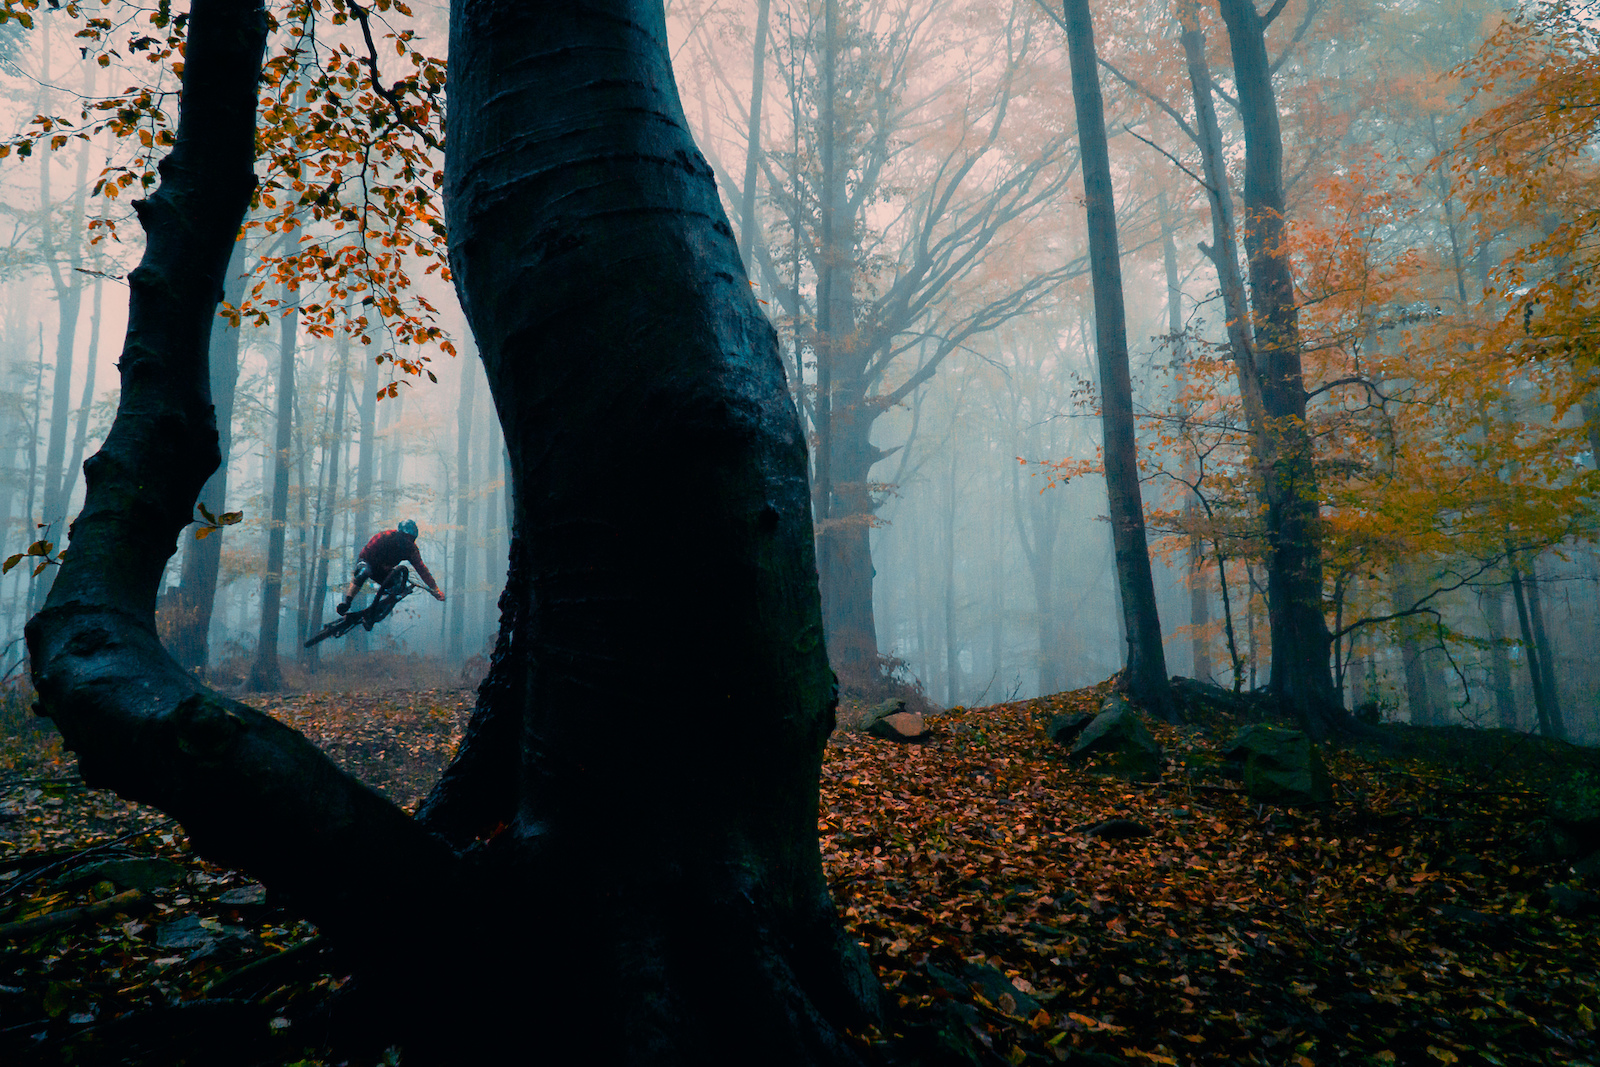 Shot this photo while filming our new video Wild Trails everyweekisawesome